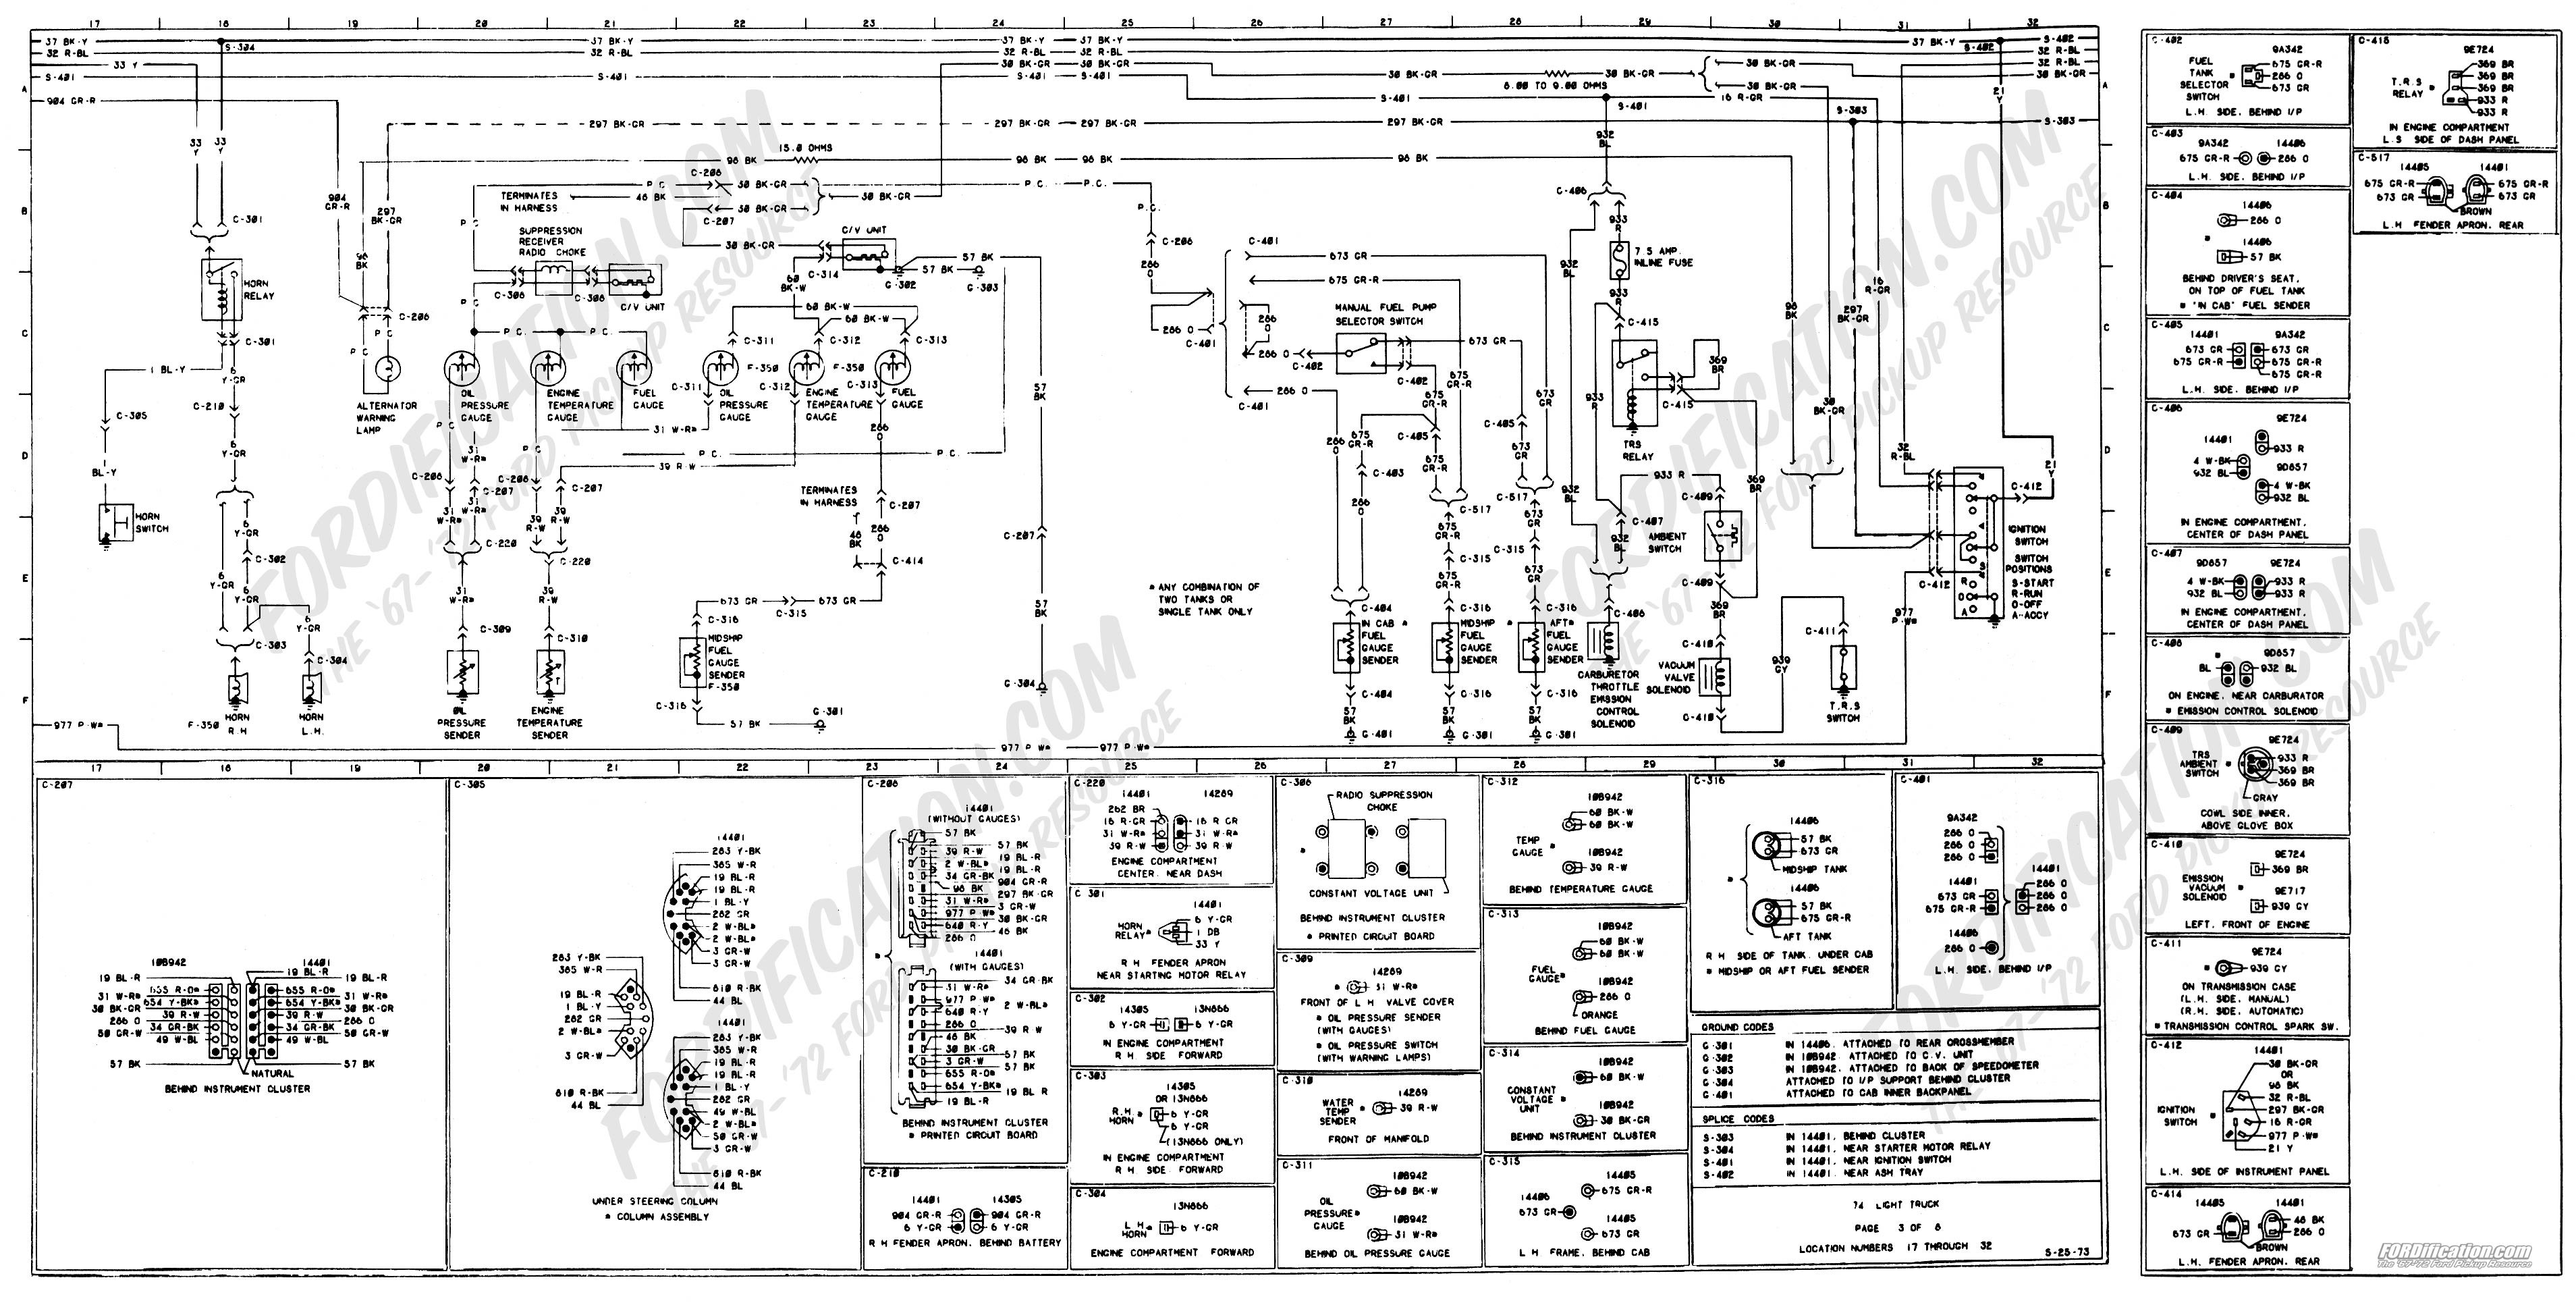 wiring diagram for ford f150 trailer lights from truck 77 ford f250 rh  detoxicrecenze com